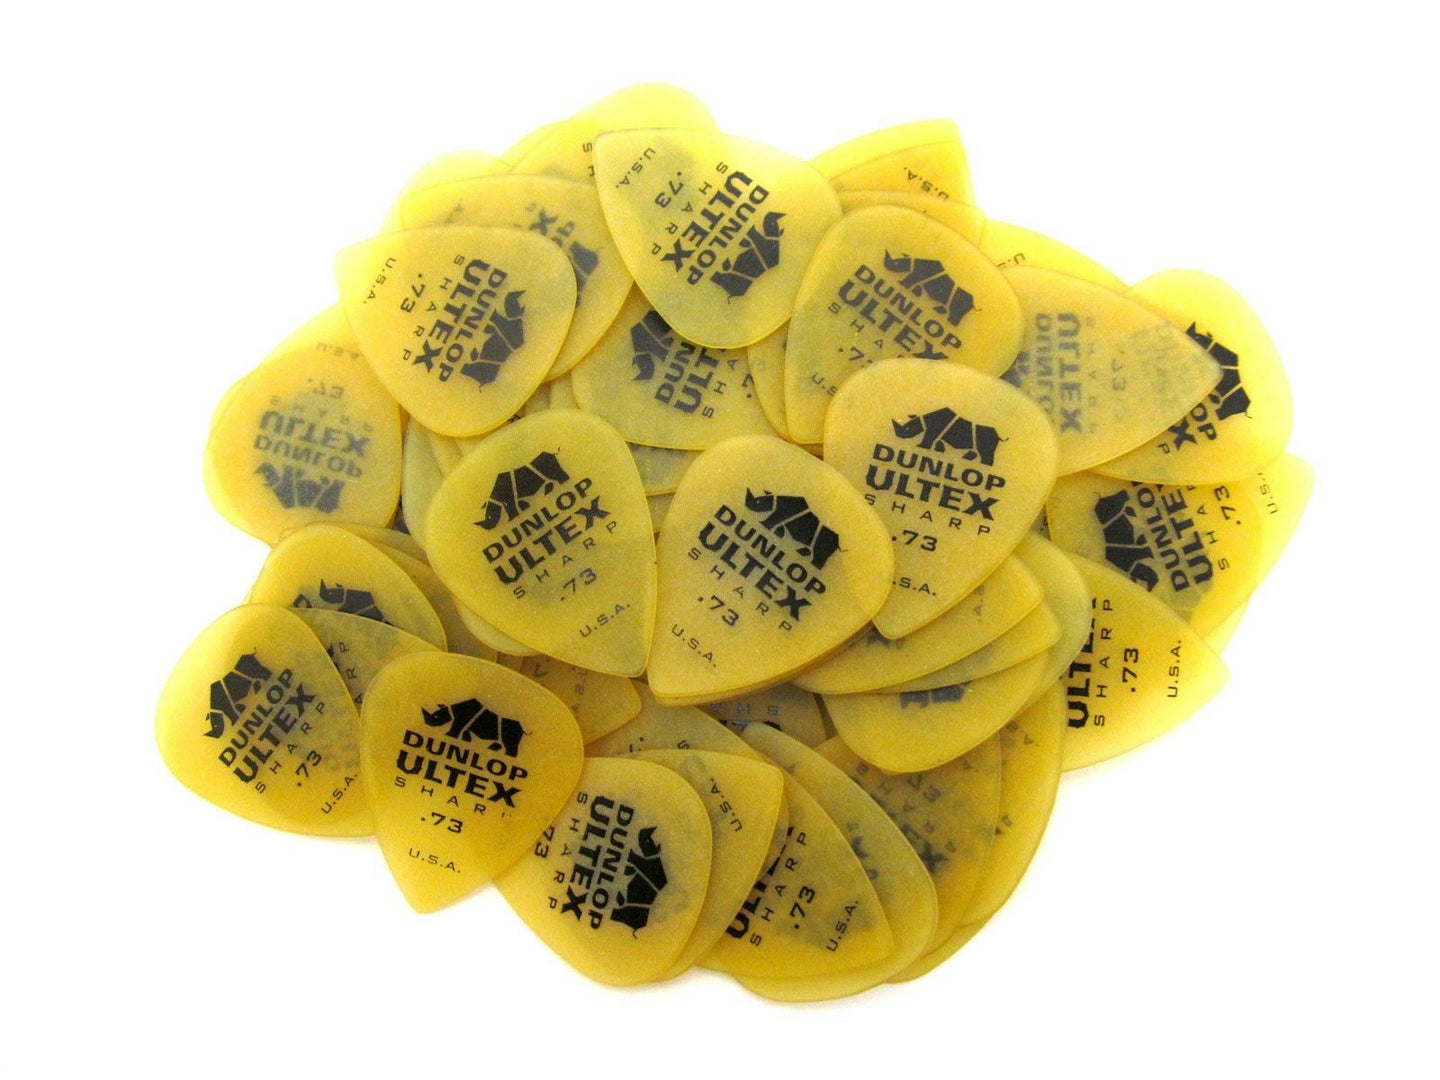 Dunlop Guitar Picks  Ultex Sharp  72 Pack   .73mm  (433R) Medium.